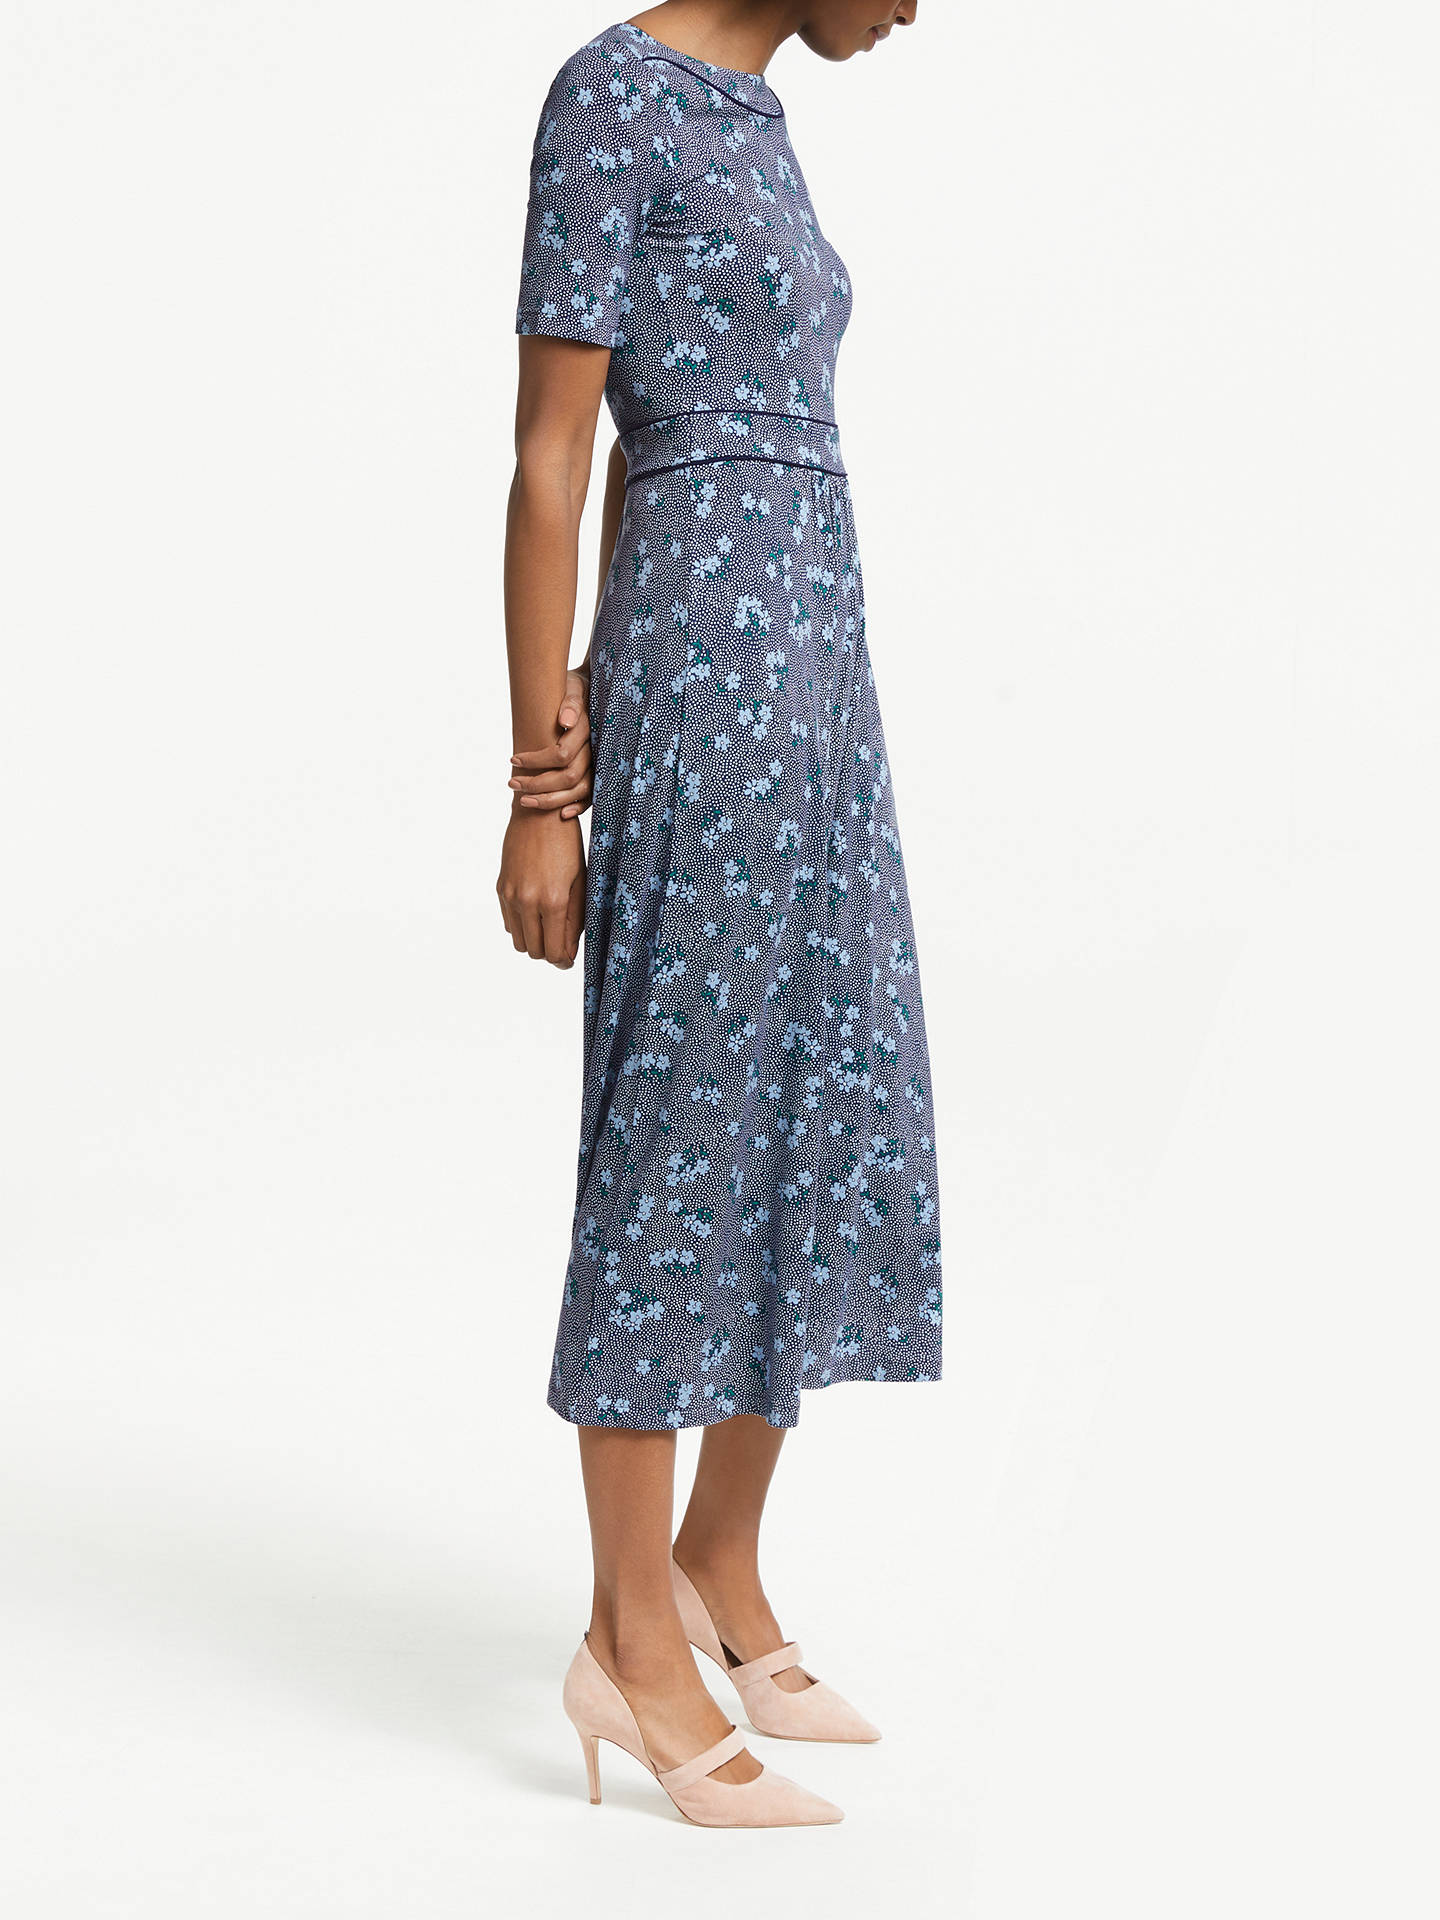 08c9f9dc5f3ae ... Buy Boden Ava Floral Spot Midi Dress, Navy/Heron Blue, 8 Online at